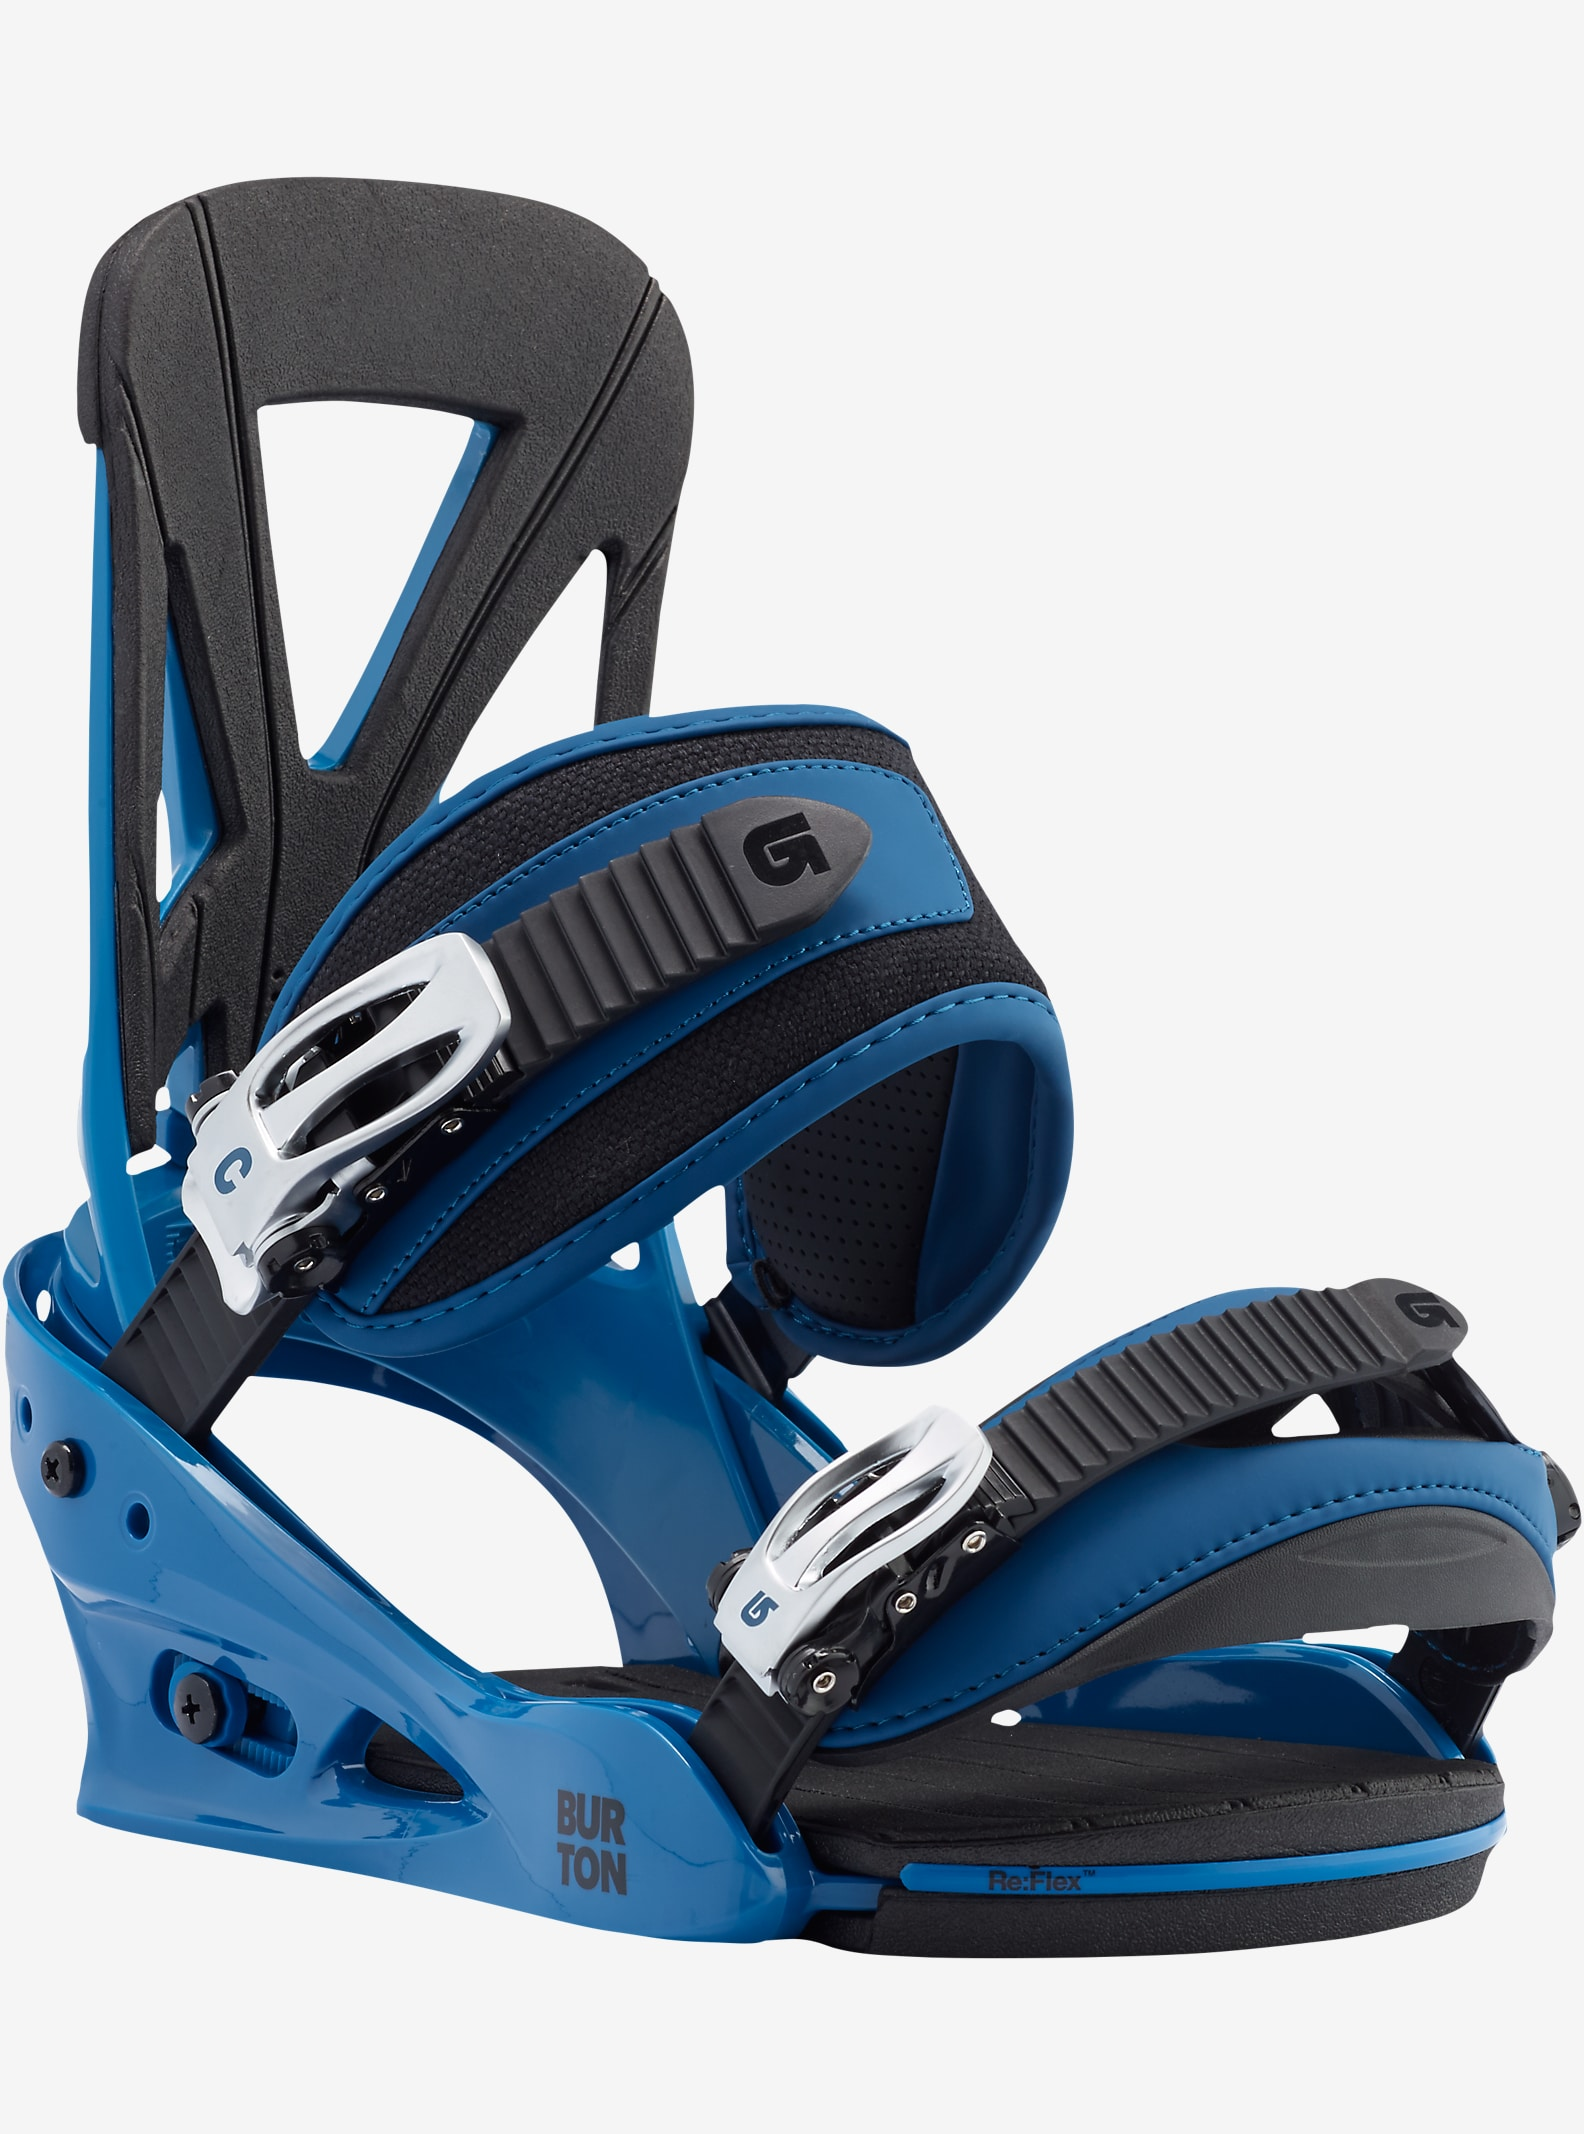 Burton Custom Snowboard Binding shown in Blue